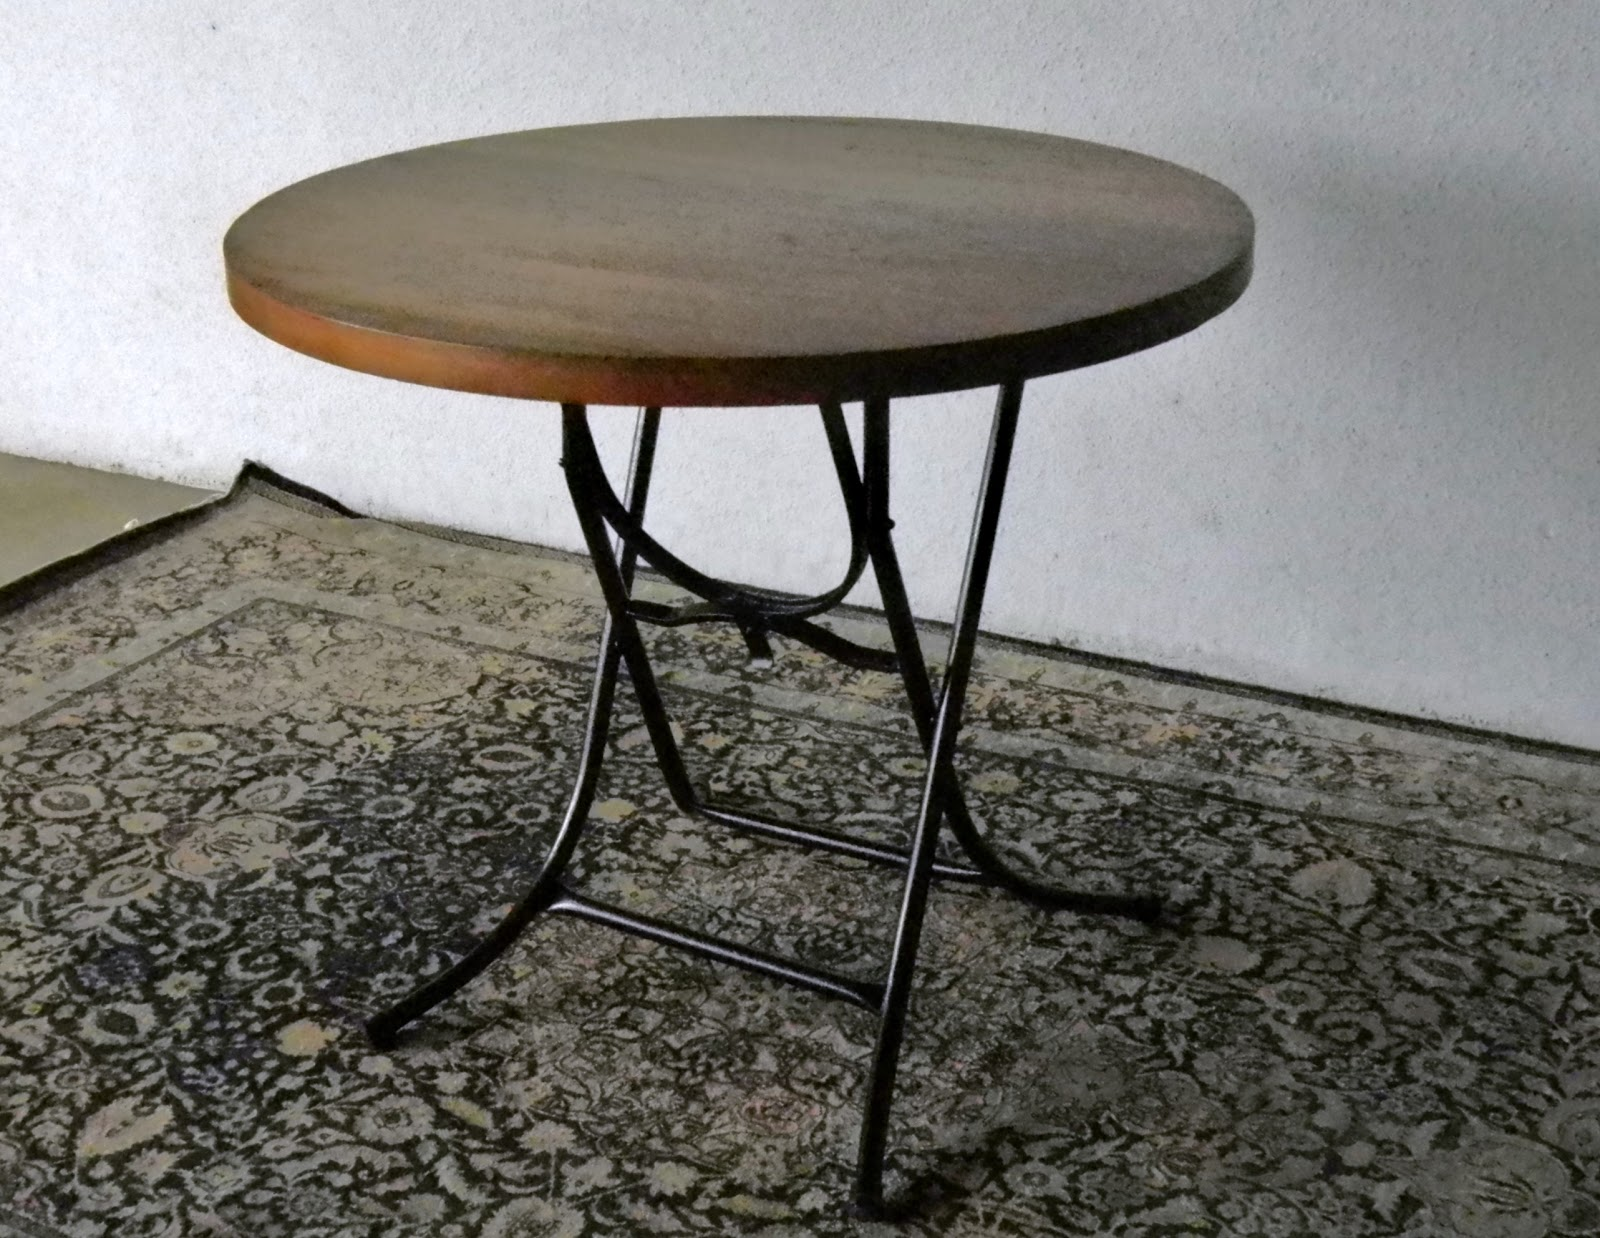 Vintage Round Foldable Table. Solid Teak Top.